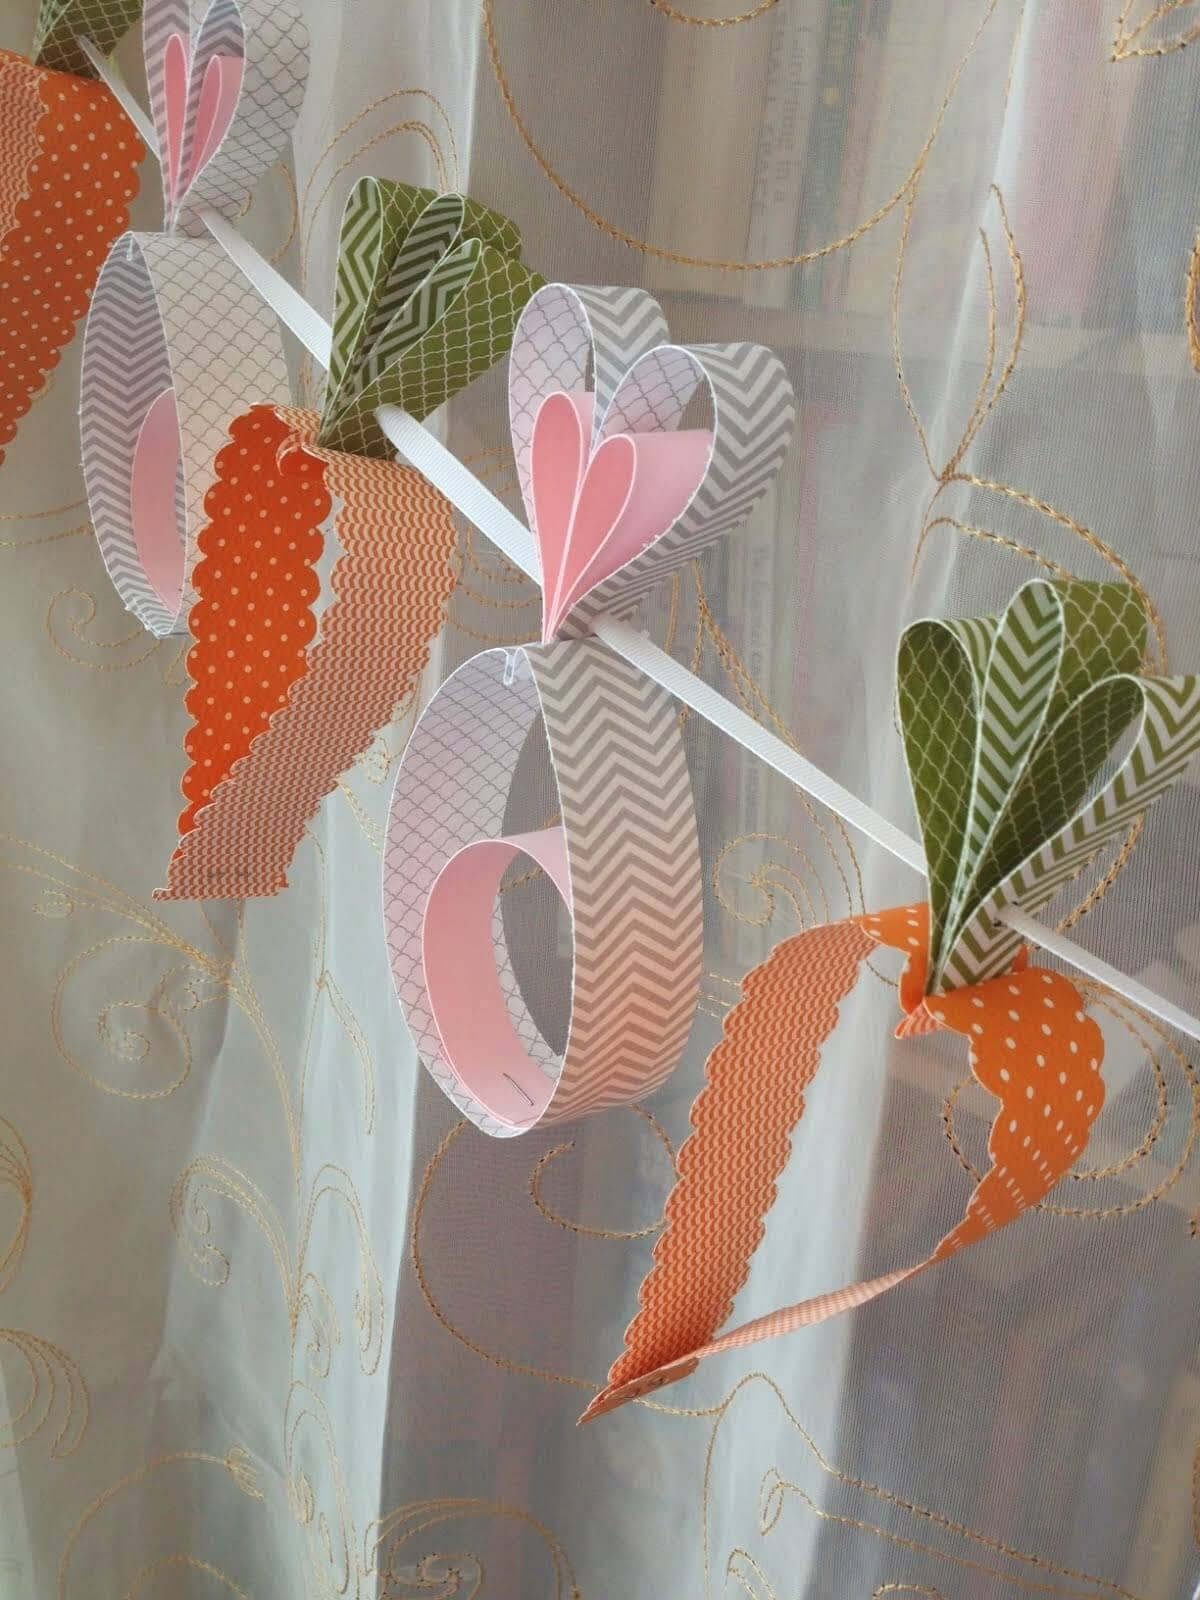 Carrot Garland from Curled Paper